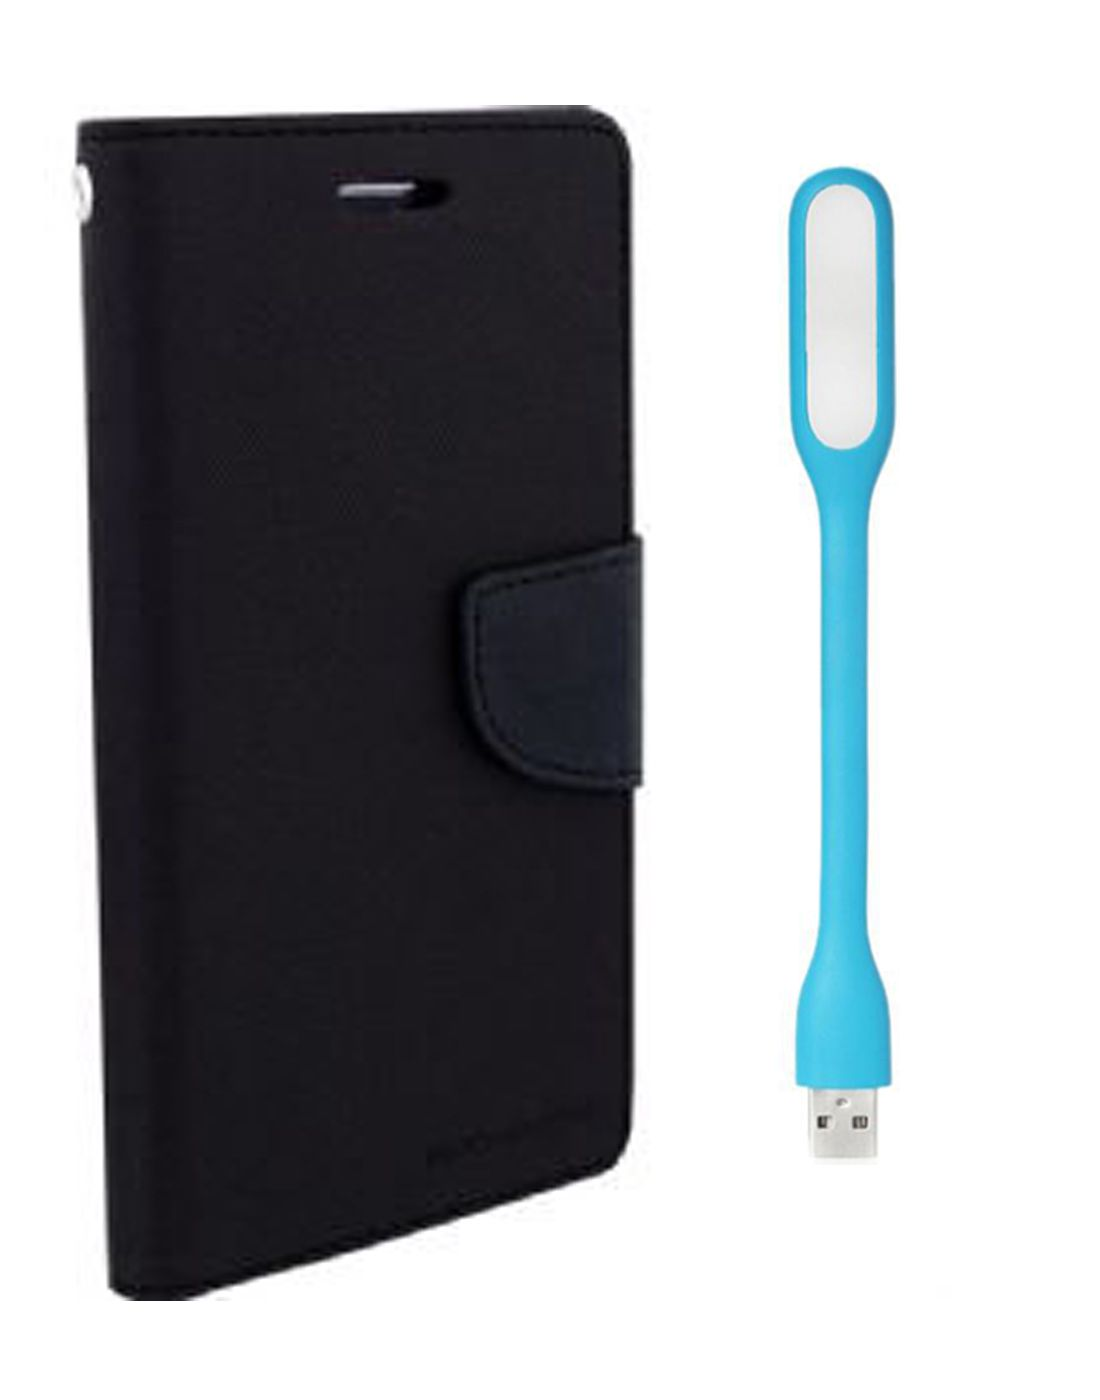 Wallet Flip Case Back Cover For Nokia 535 - (Black) + Flexible Mini LED Stick Lamp Light By Style Crome